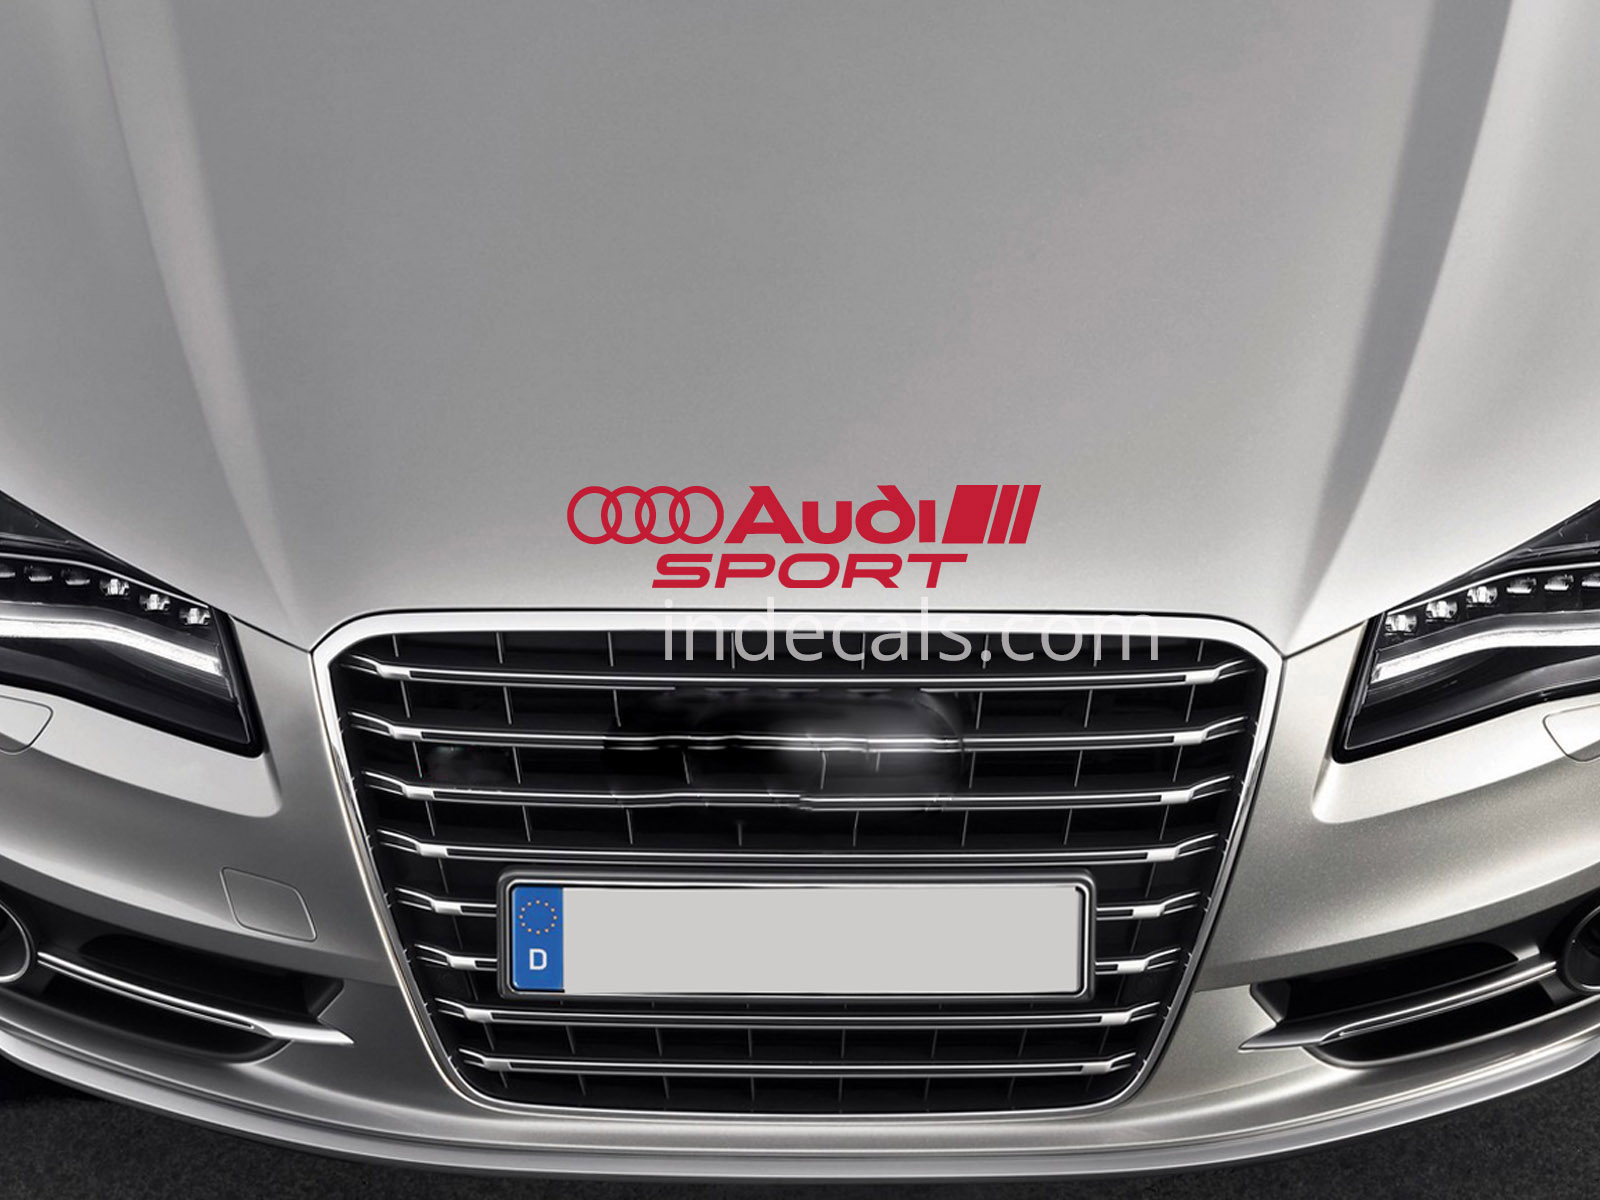 1 x Audi Sport Sticker for Bonnet - Red